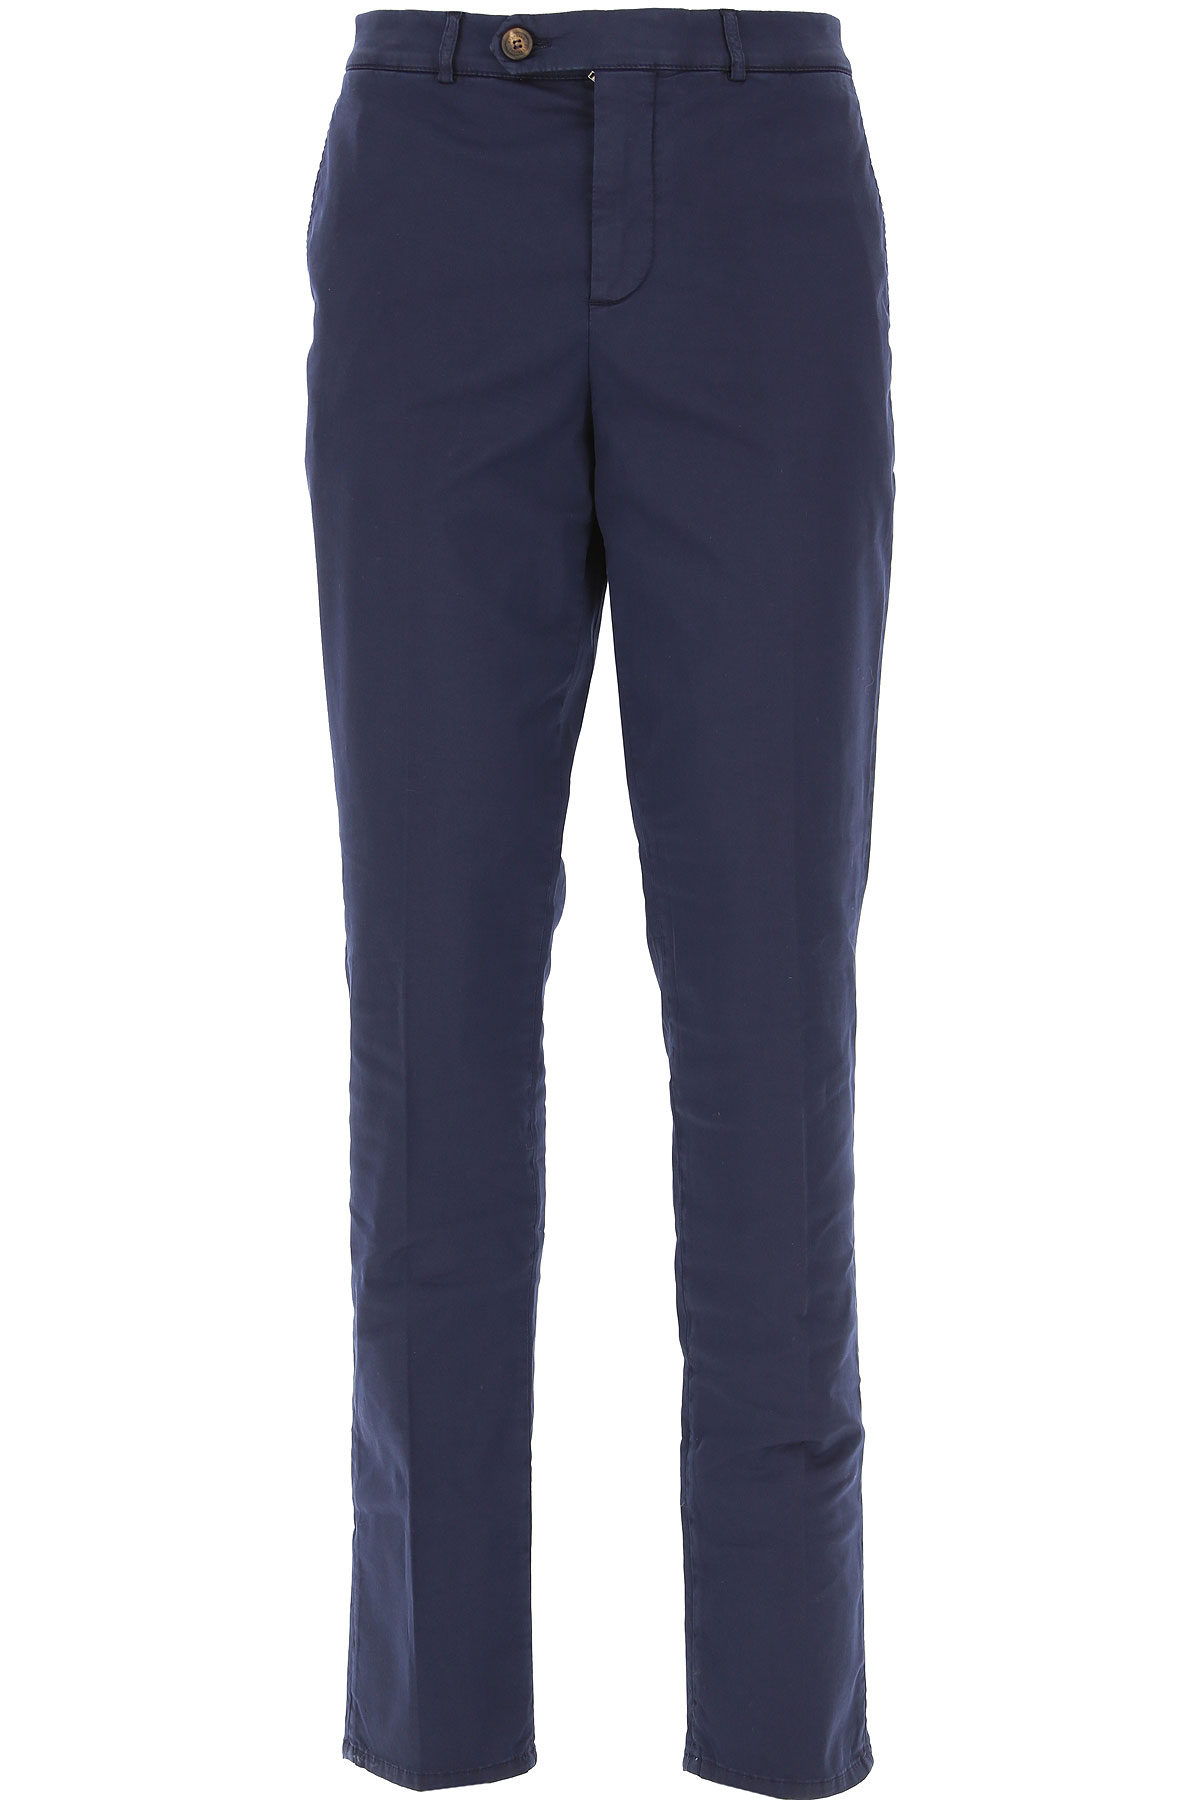 Brunello Cucinelli Pants for Men On Sale in Outlet, Blue, Cotton, 2019, 34 38